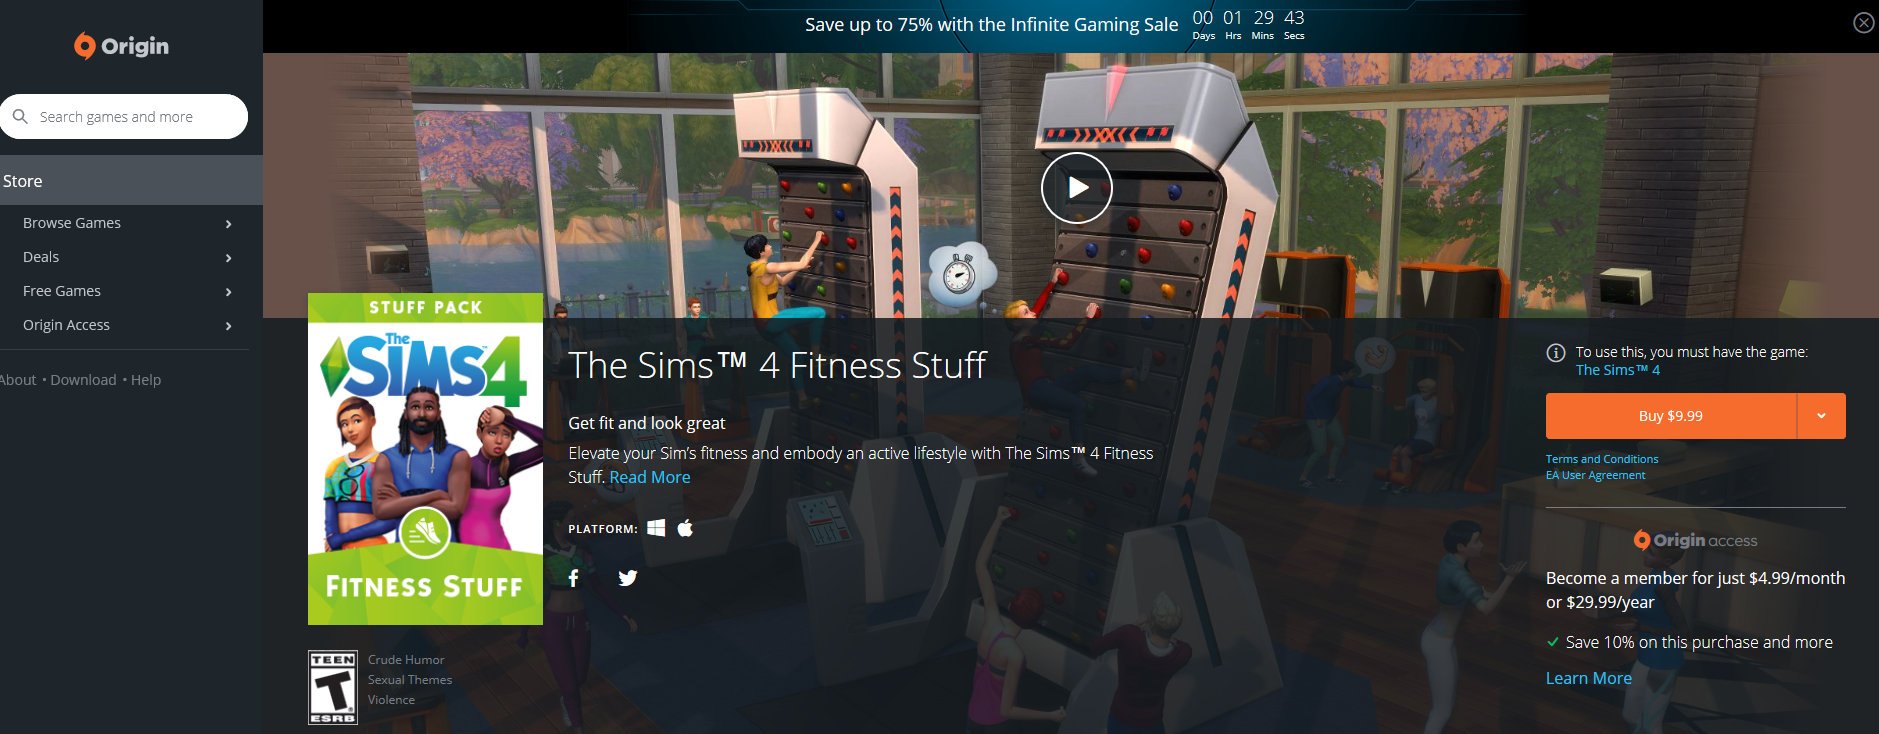 the sims 4 fitness stuff pack now available at origin simsvip